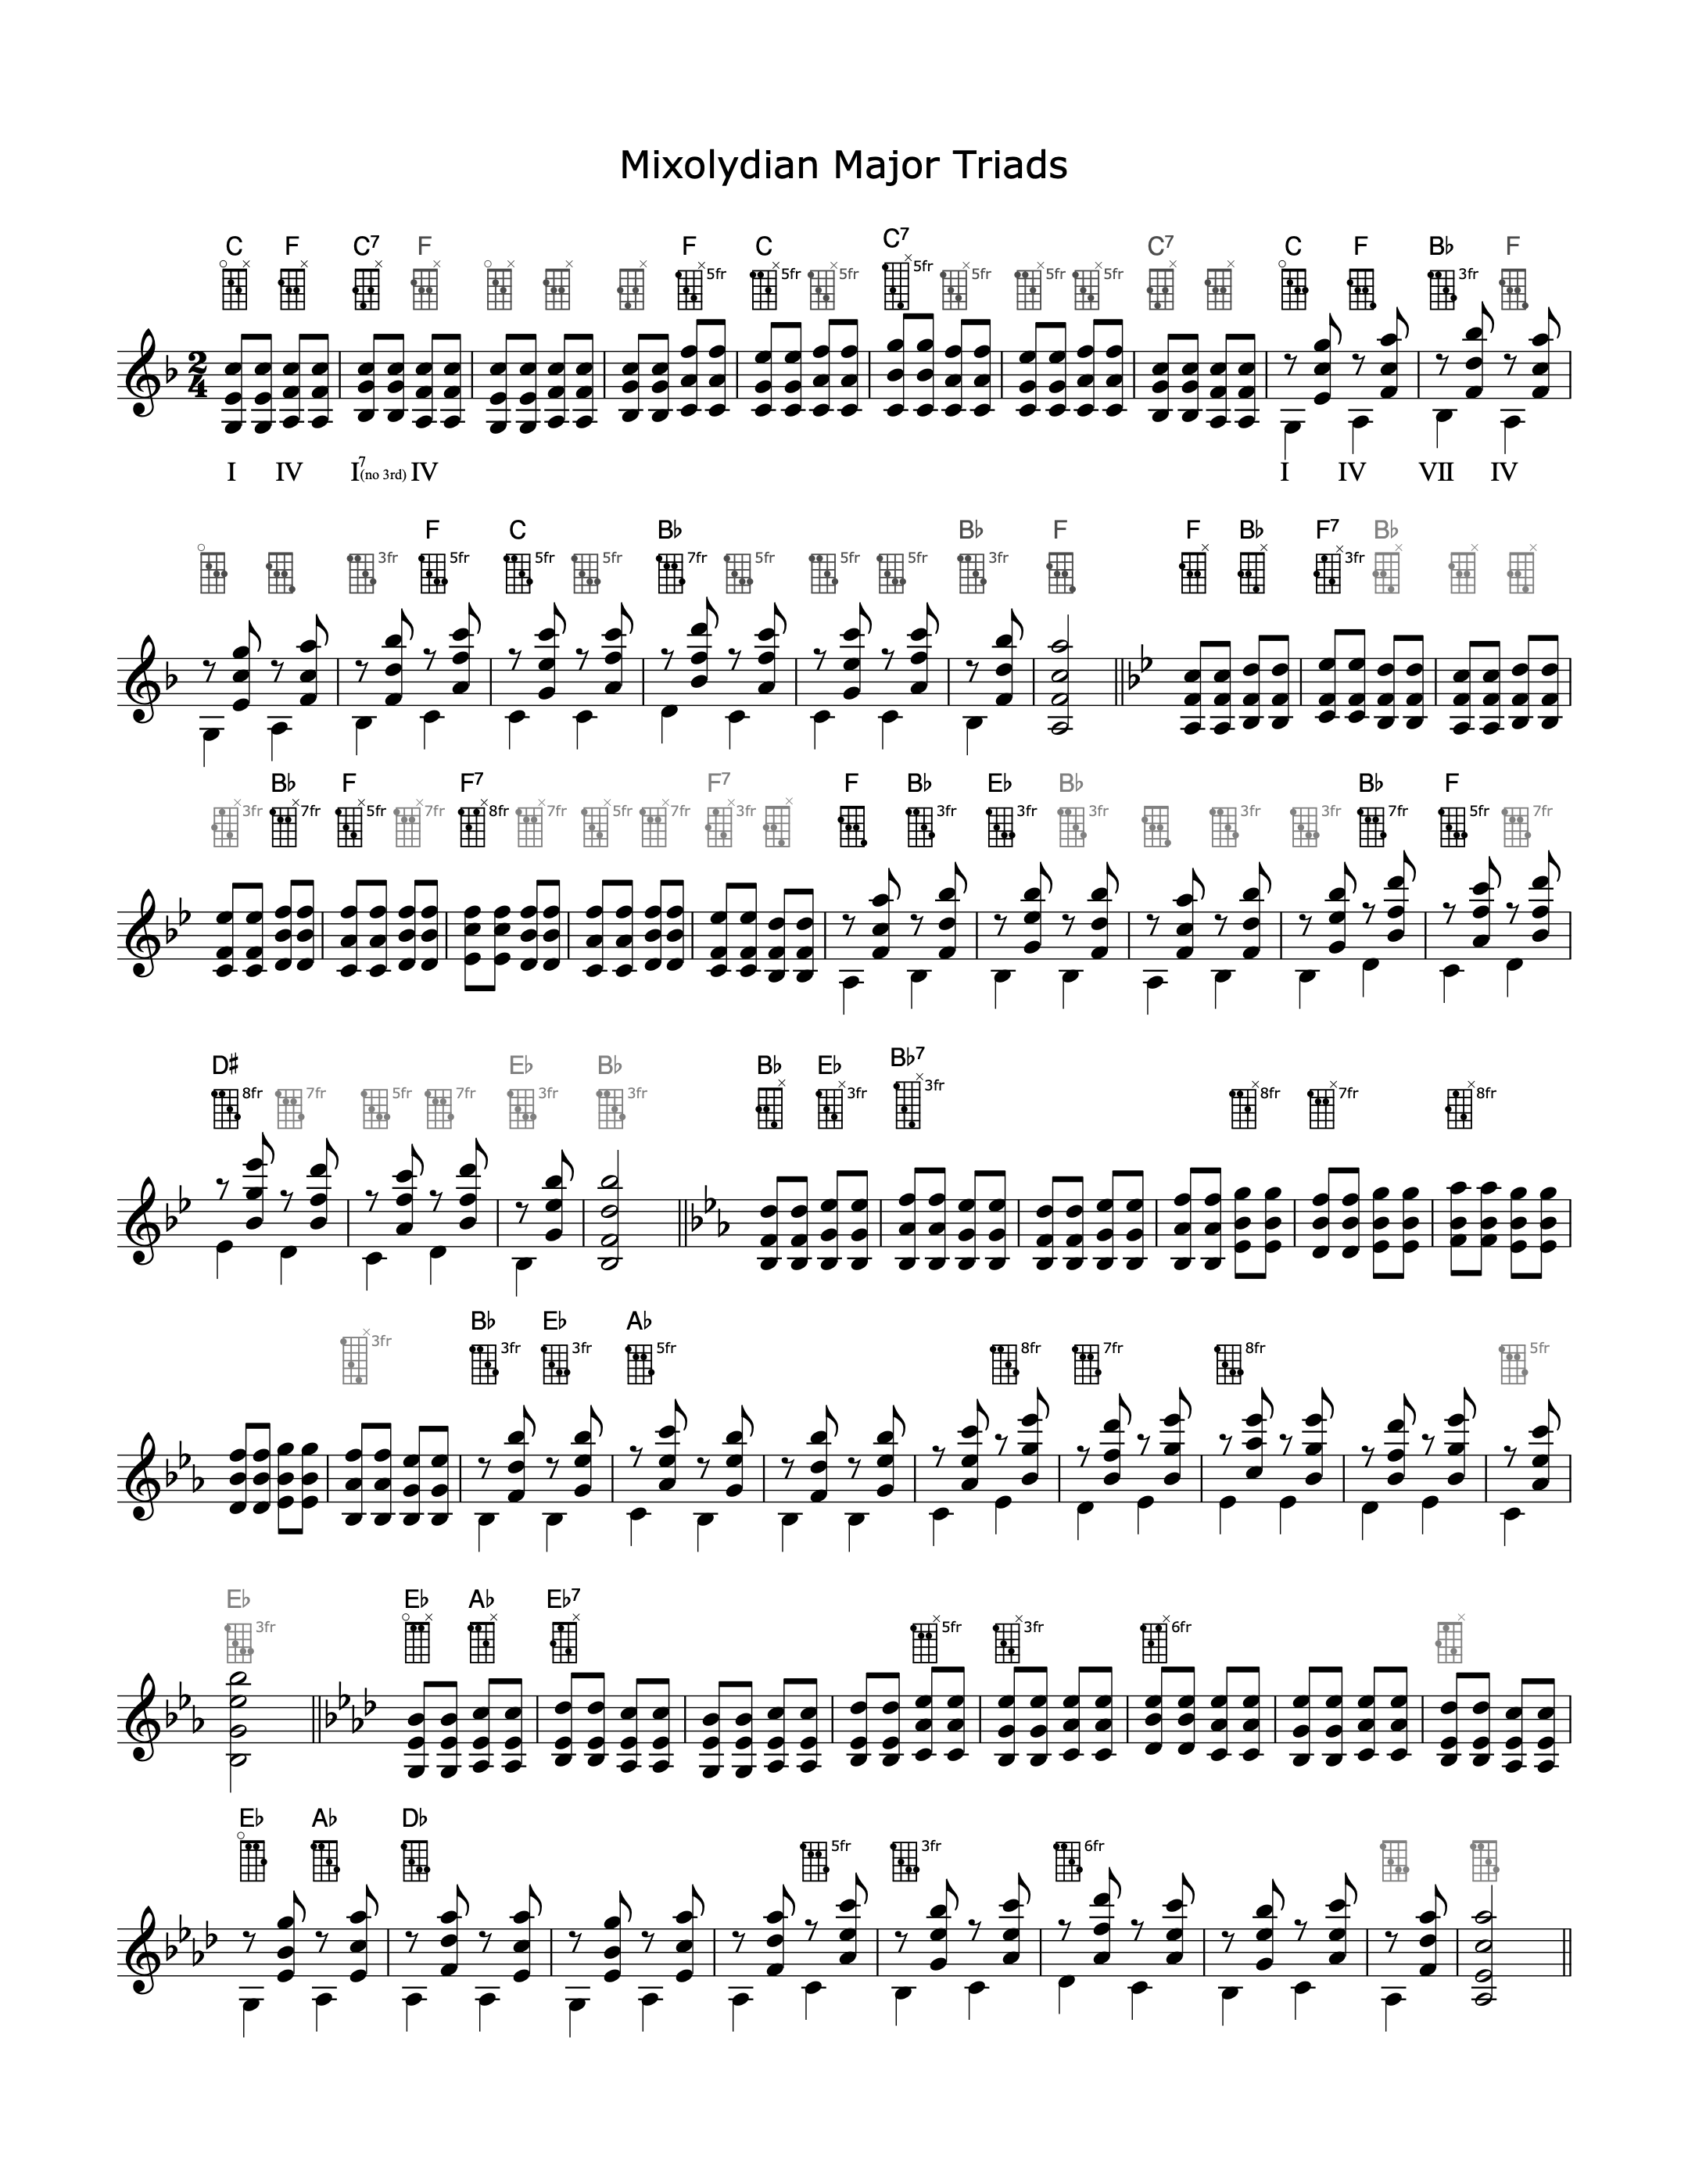 Mixolydian Major Triads